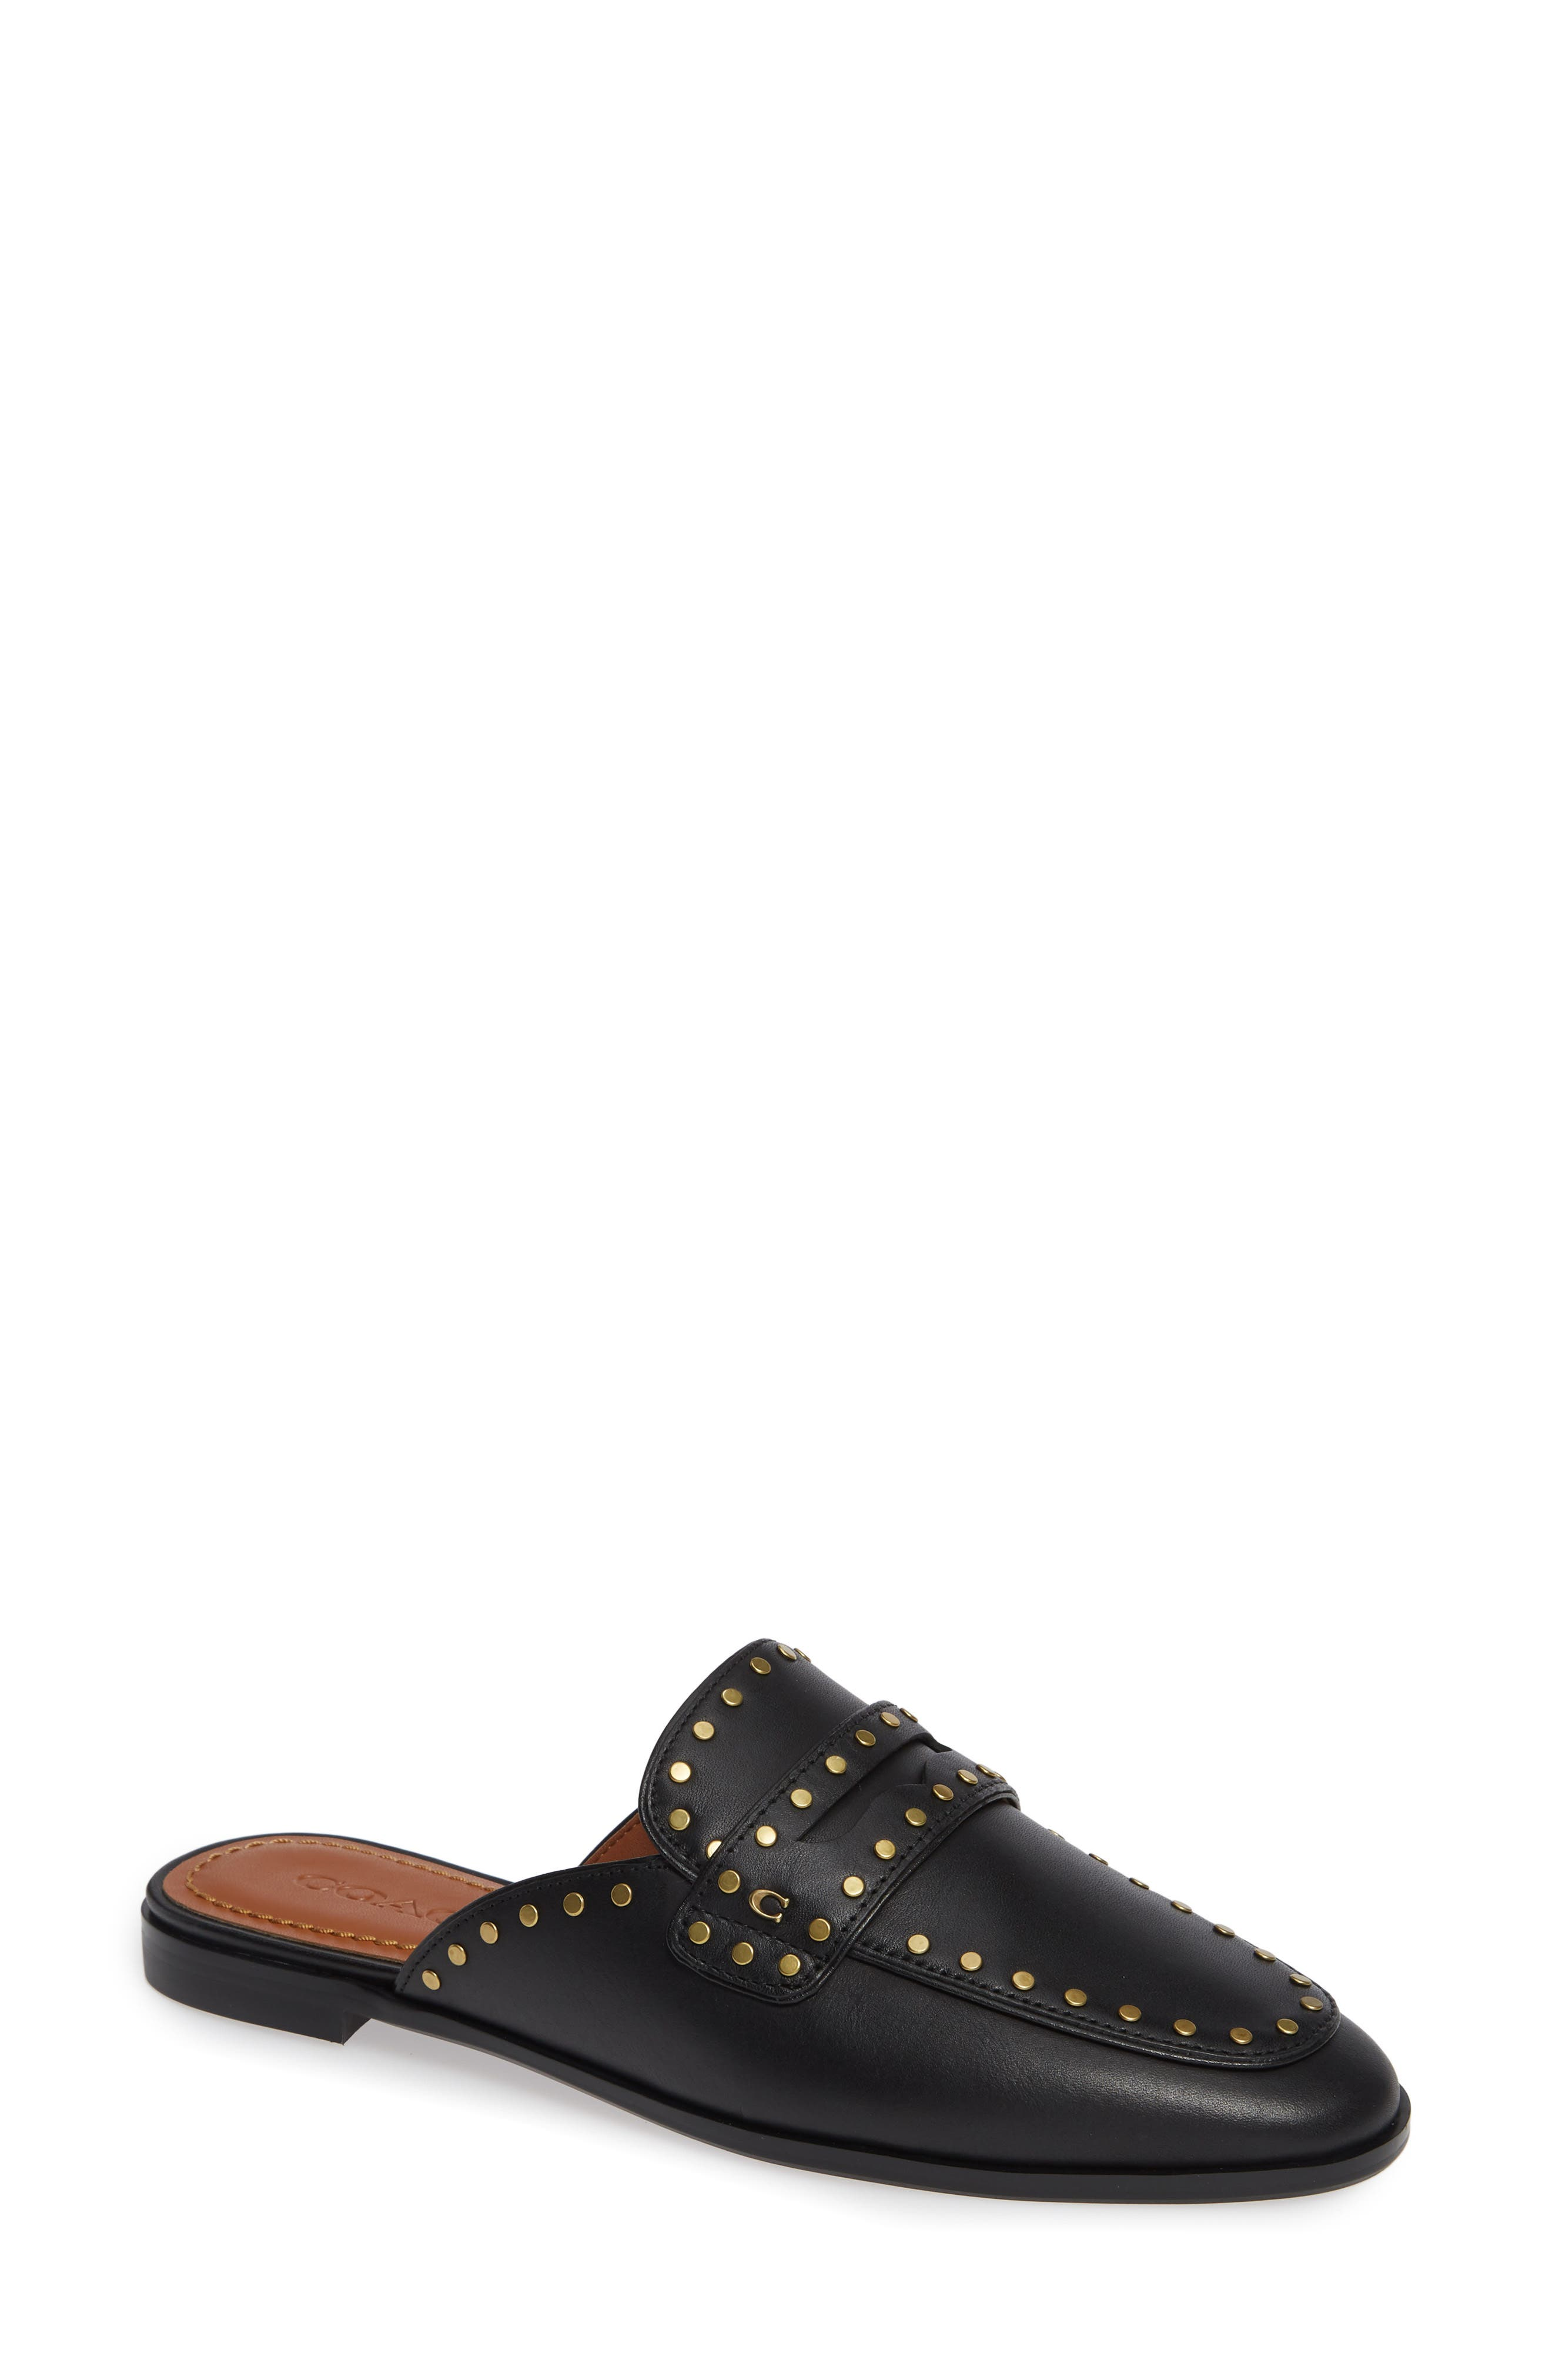 Fiona Loafer Mule,                             Main thumbnail 1, color,                             Black Elather